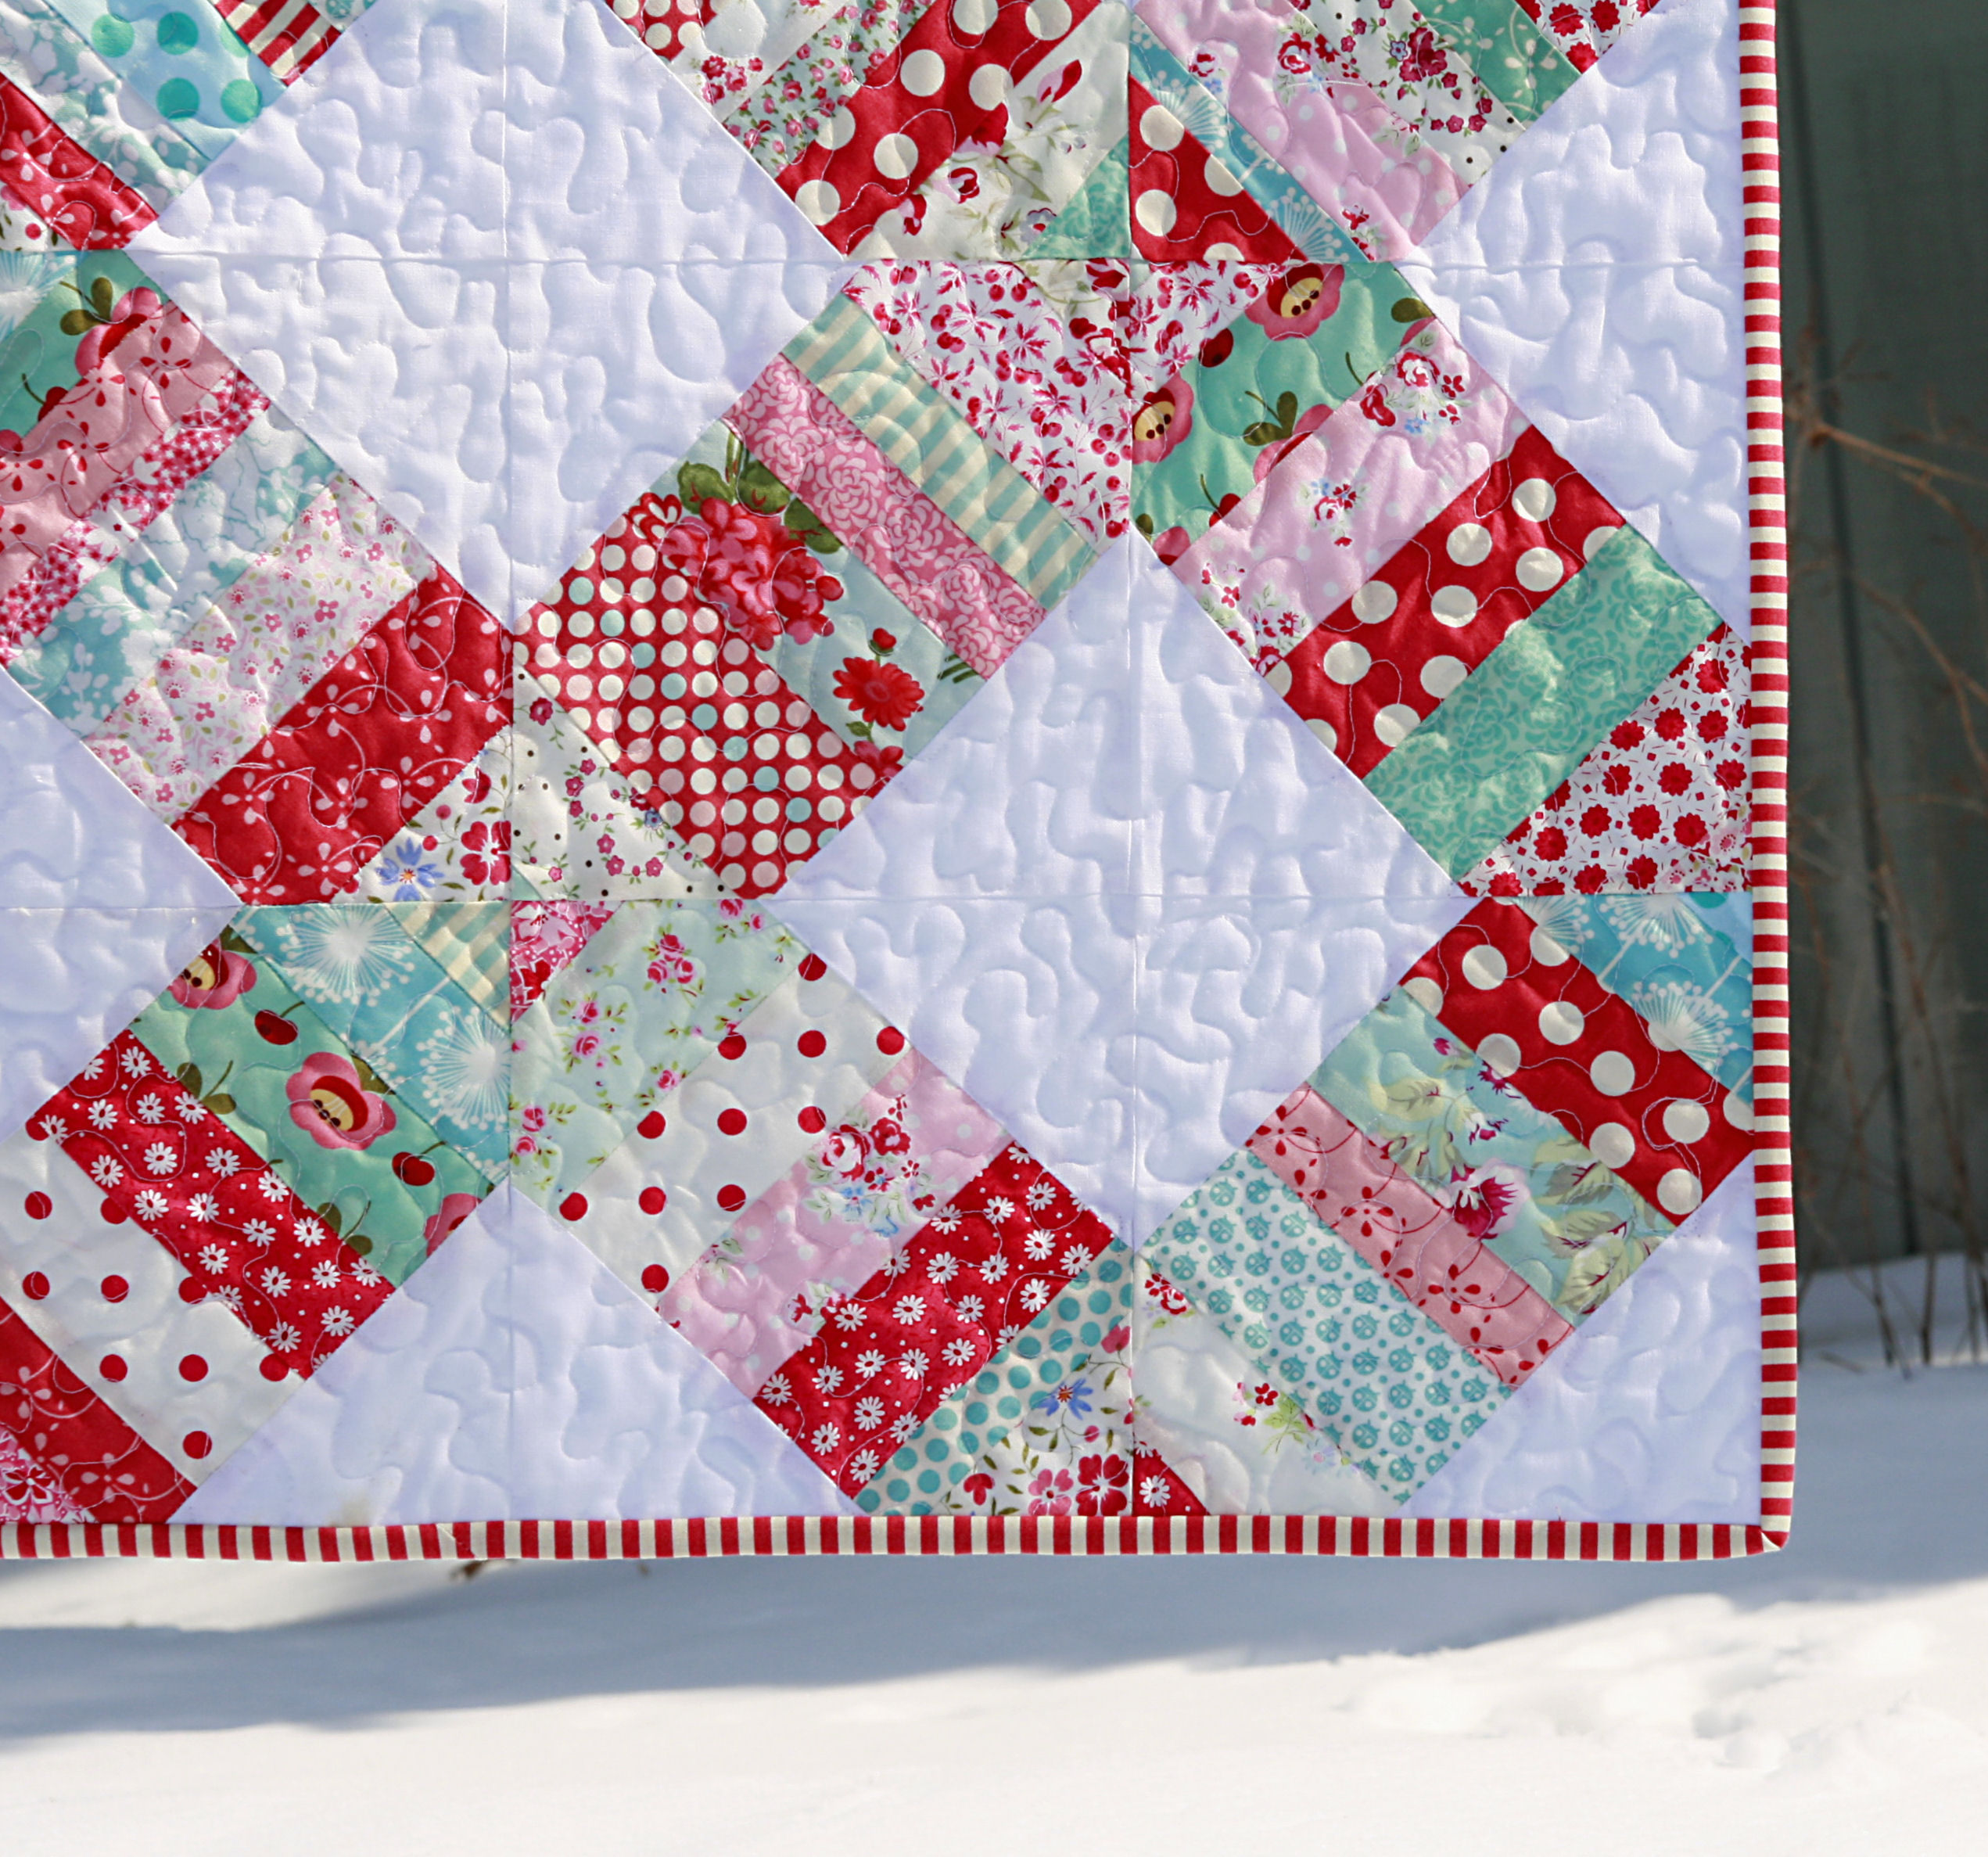 Wedding Ring Quilts: Liberated Wedding Ring Quilt & Giveaway